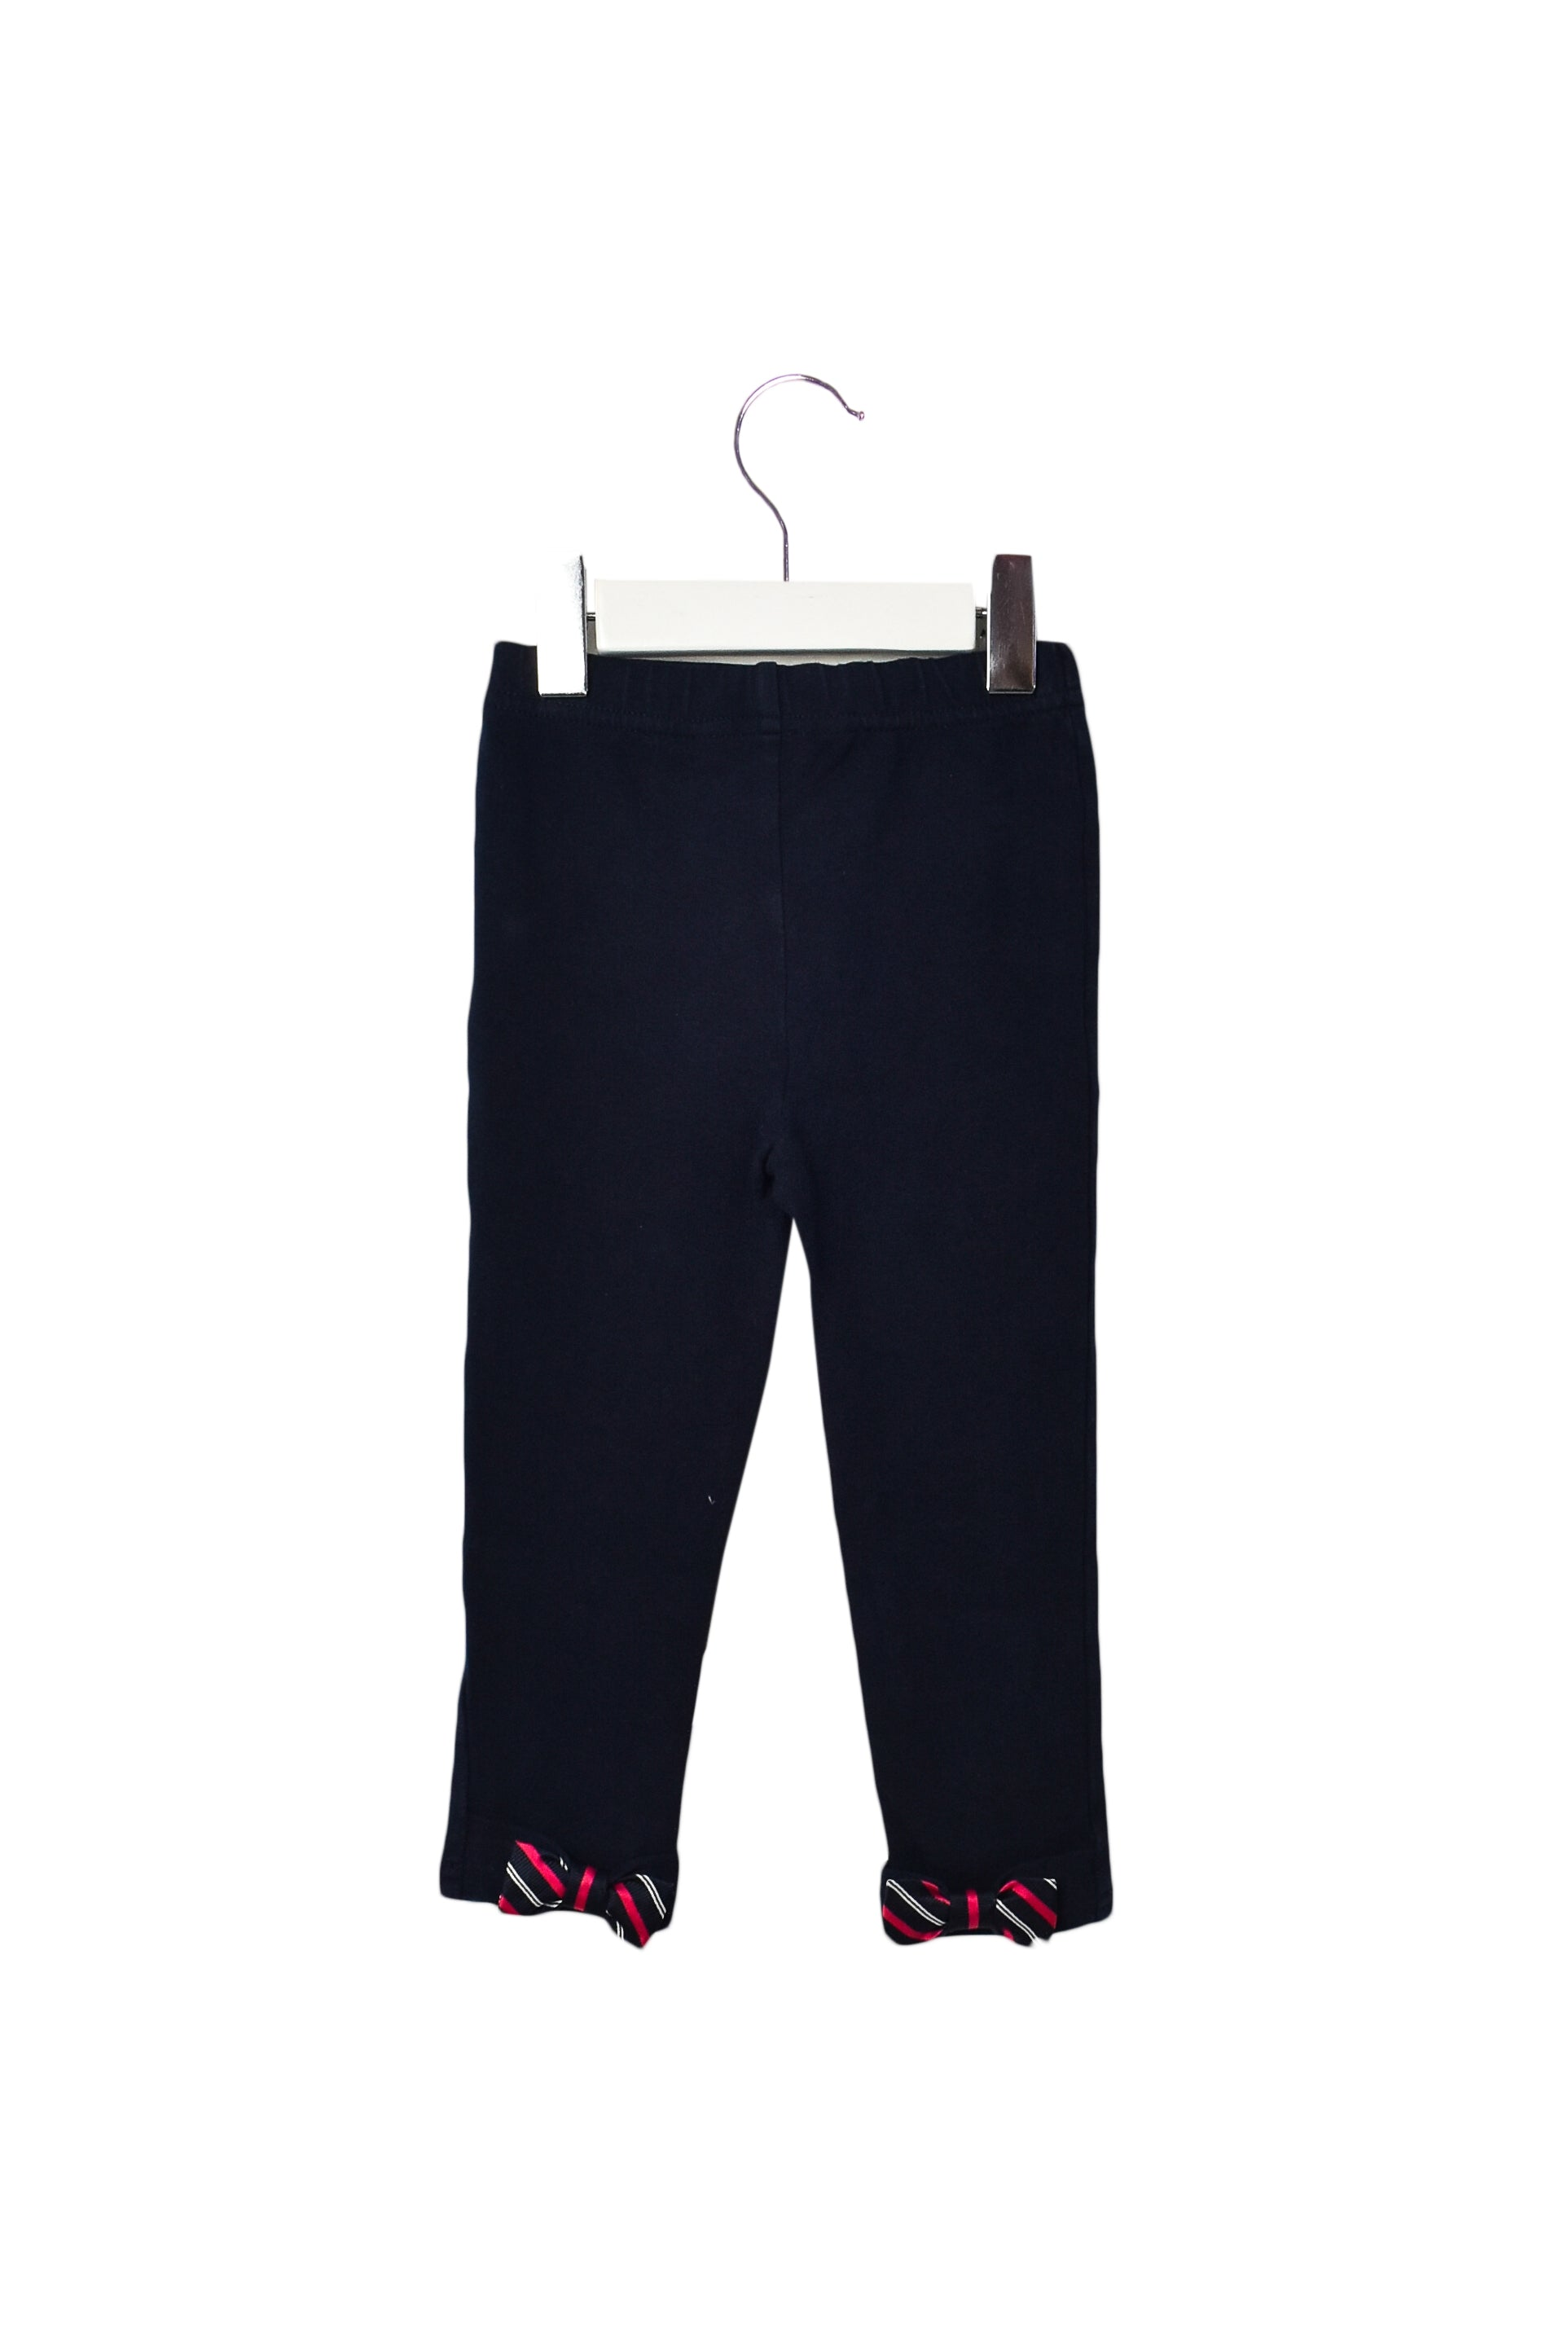 10006604 Ralph Lauren Kids~ Leggings 24M at Retykle